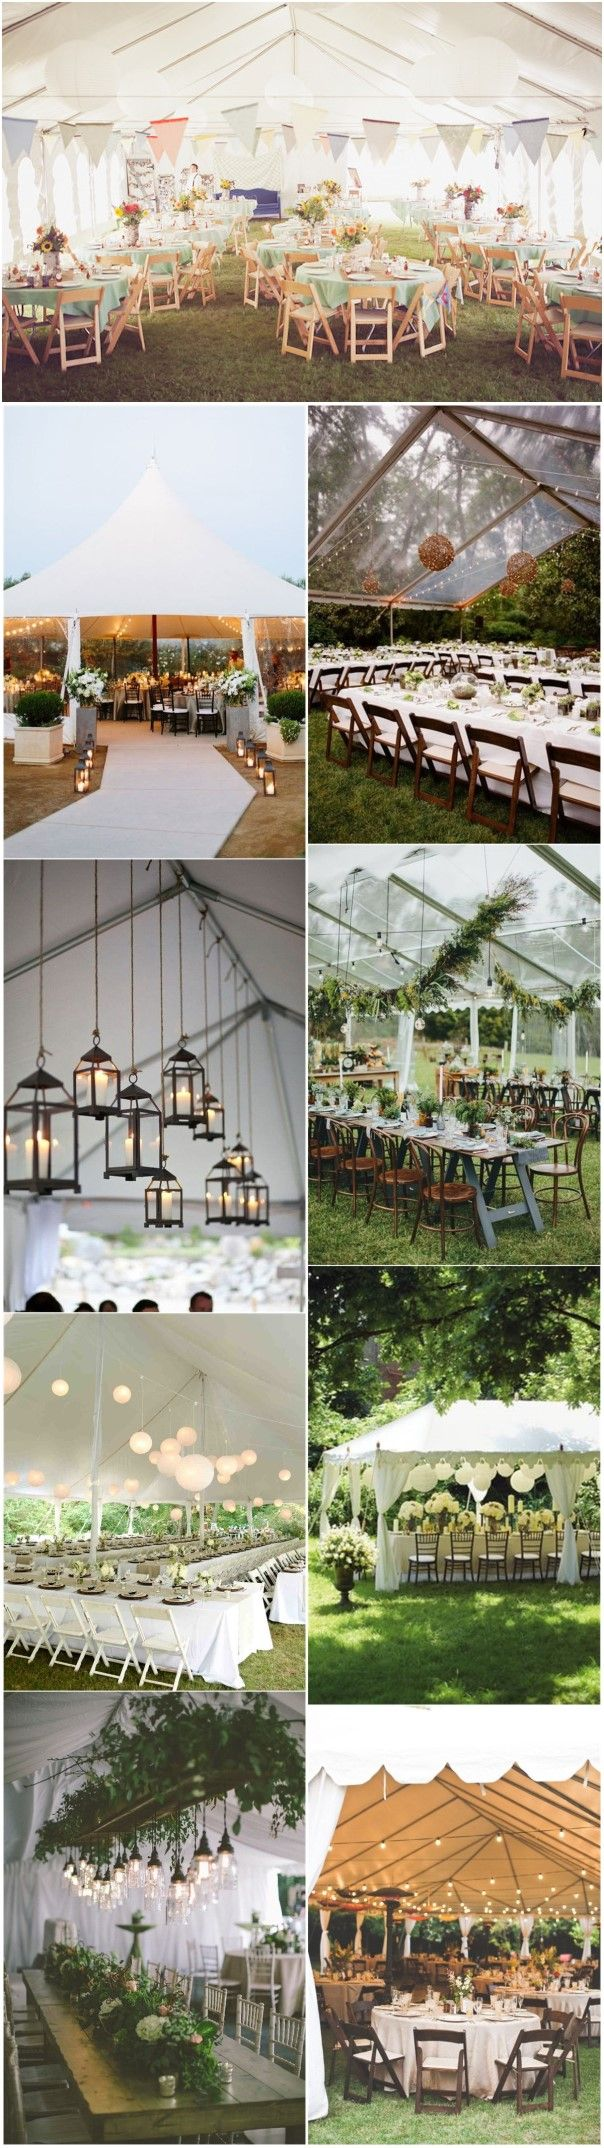 Wedding decorations tent october 2018  best Шатер images on Pinterest  Wedding ideas Tents and Weddings